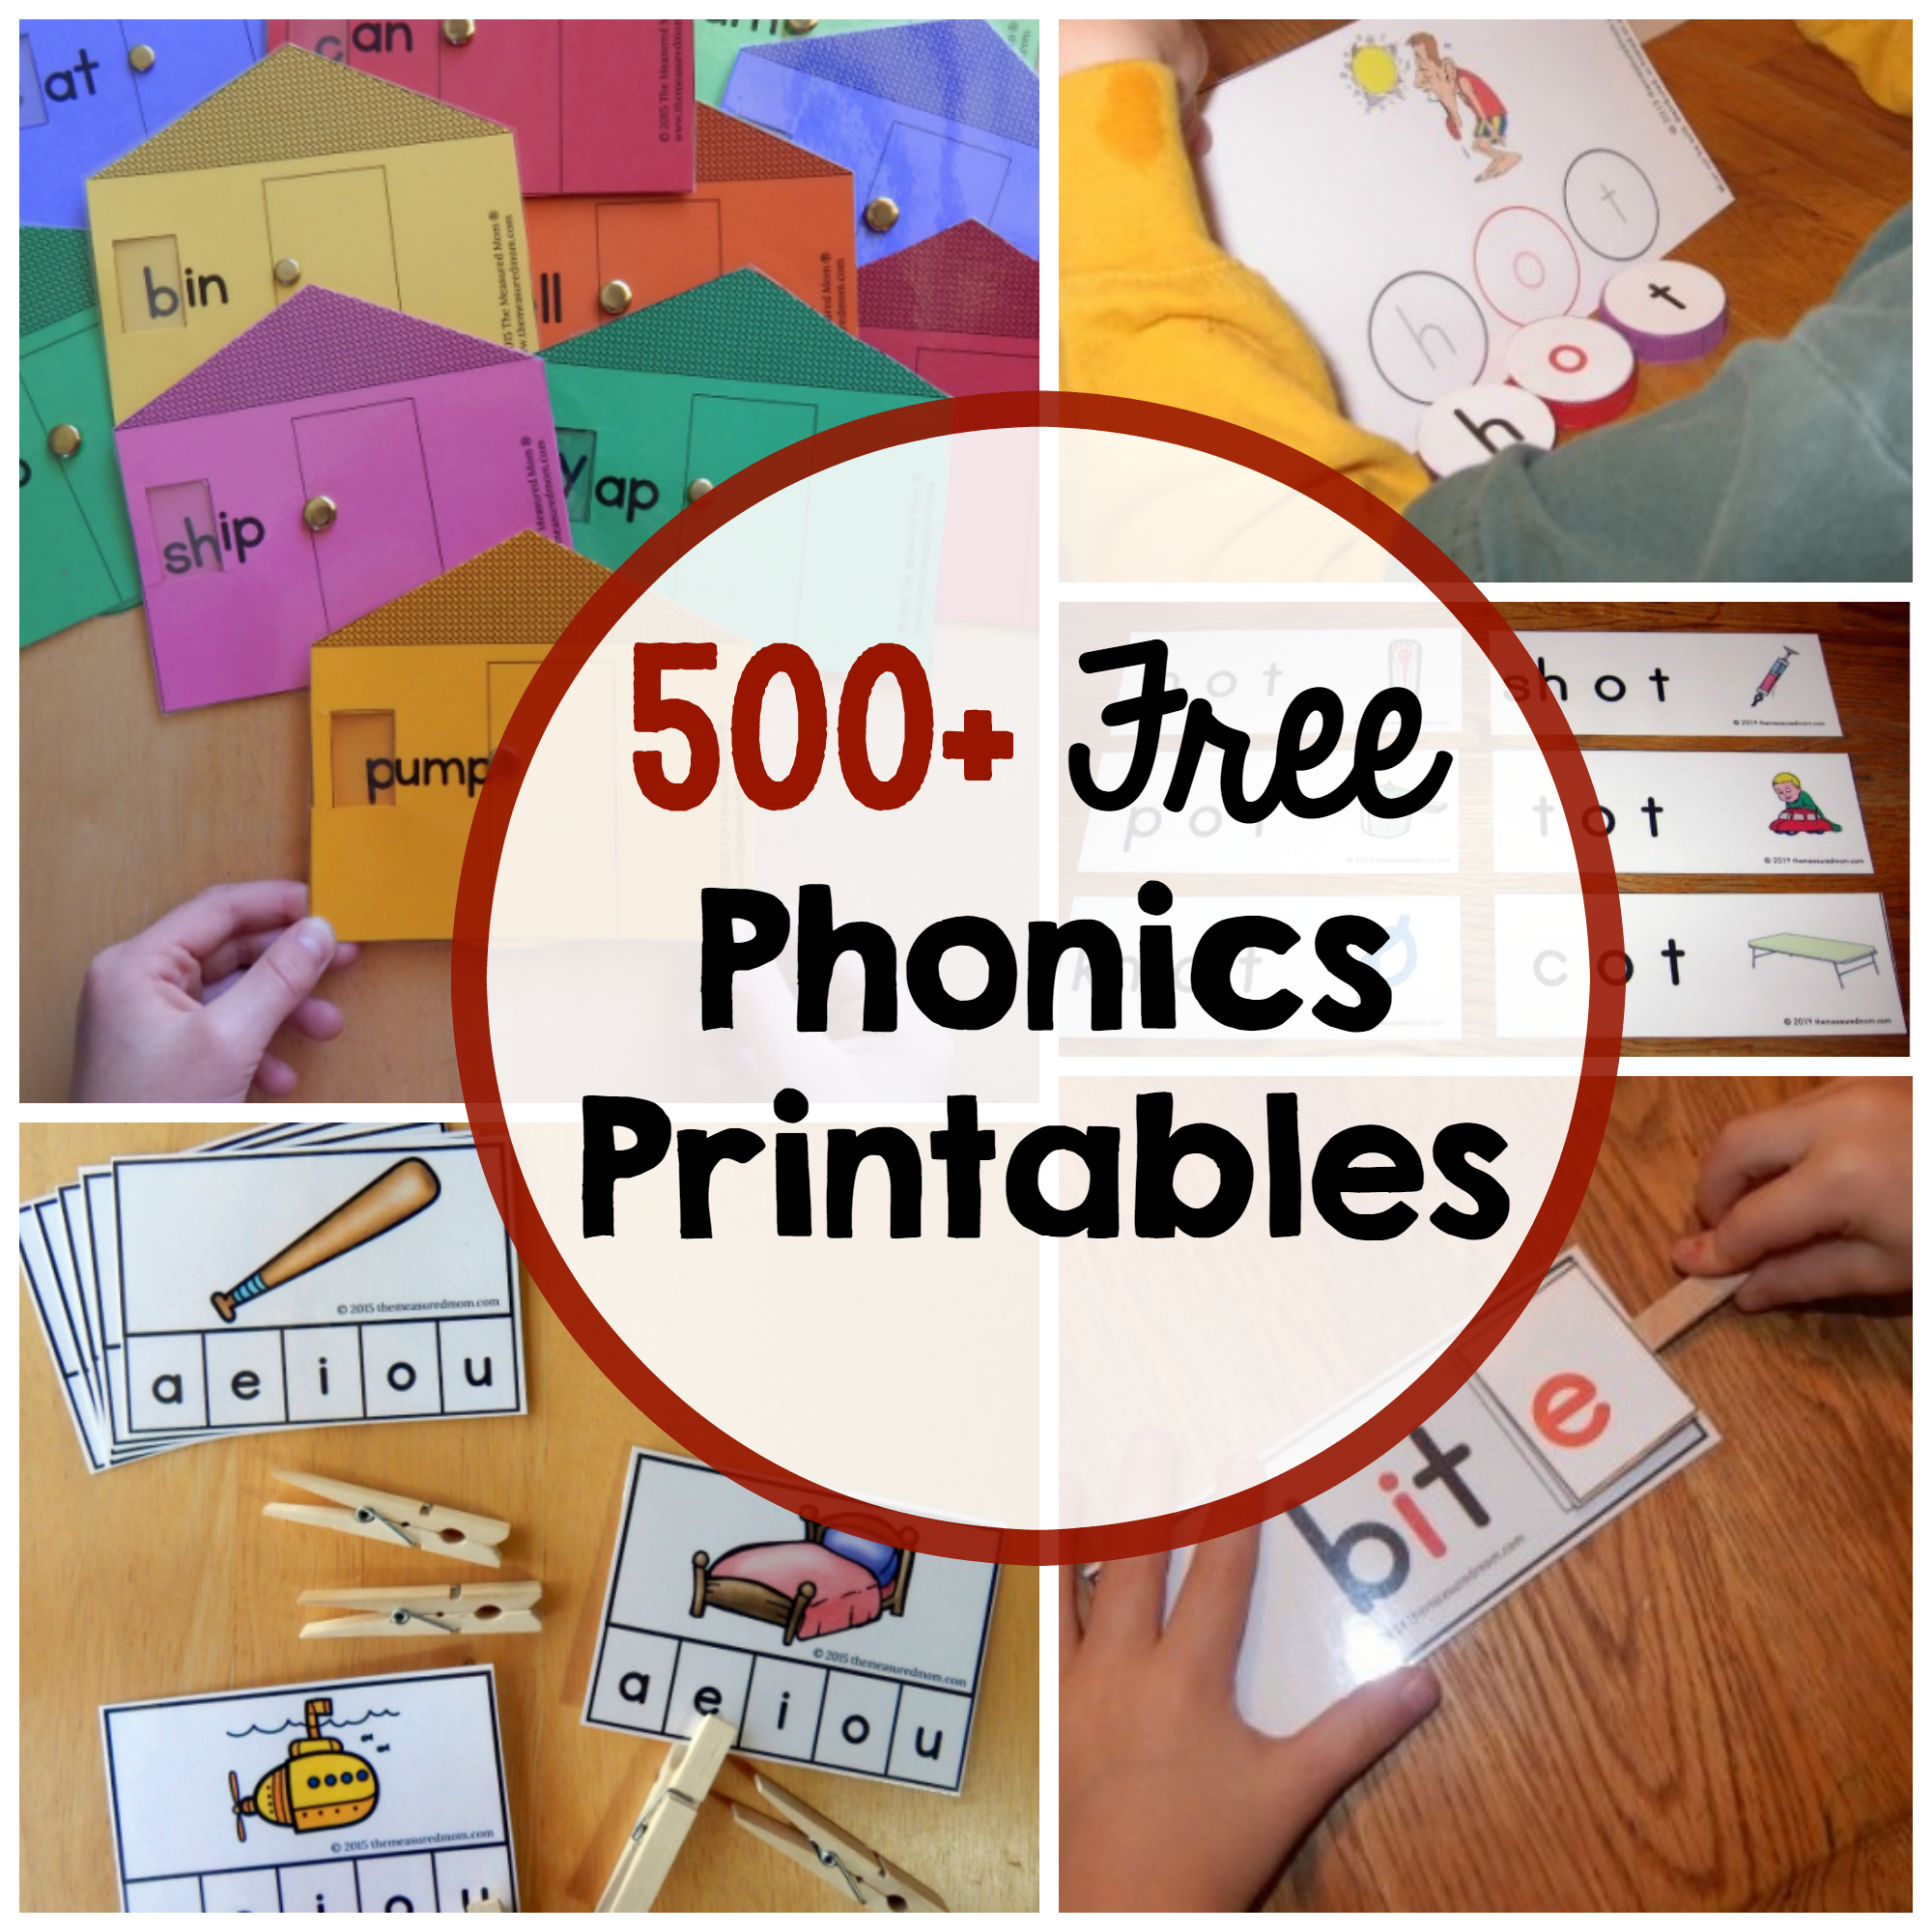 Phonics Activities - The Measured Mom - Free Printable Word Family Games